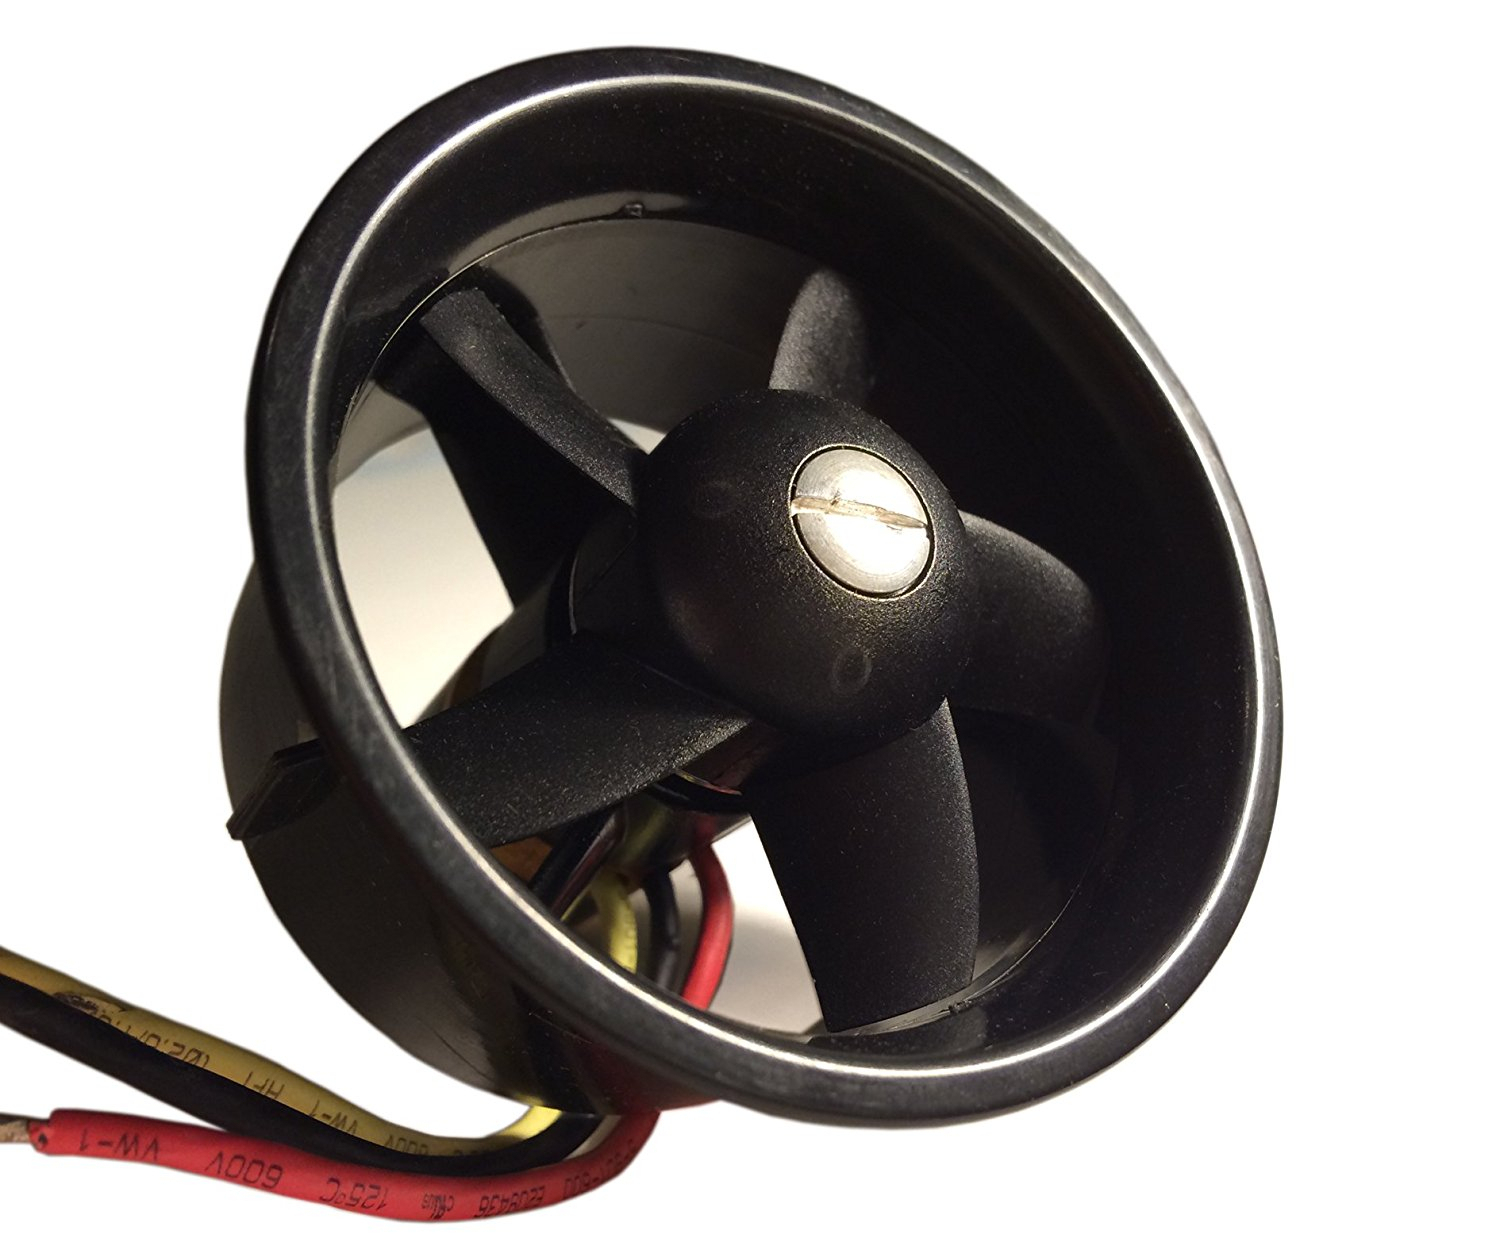 QX-Motor 64mm EDF Ducted Fan Set 5 Blades Electric EDF with 3-4s Motor QF2822 4300KV Brushless Outrunner Motor for Jet AirPlane 64mm duct fan 4800kv brushless motor